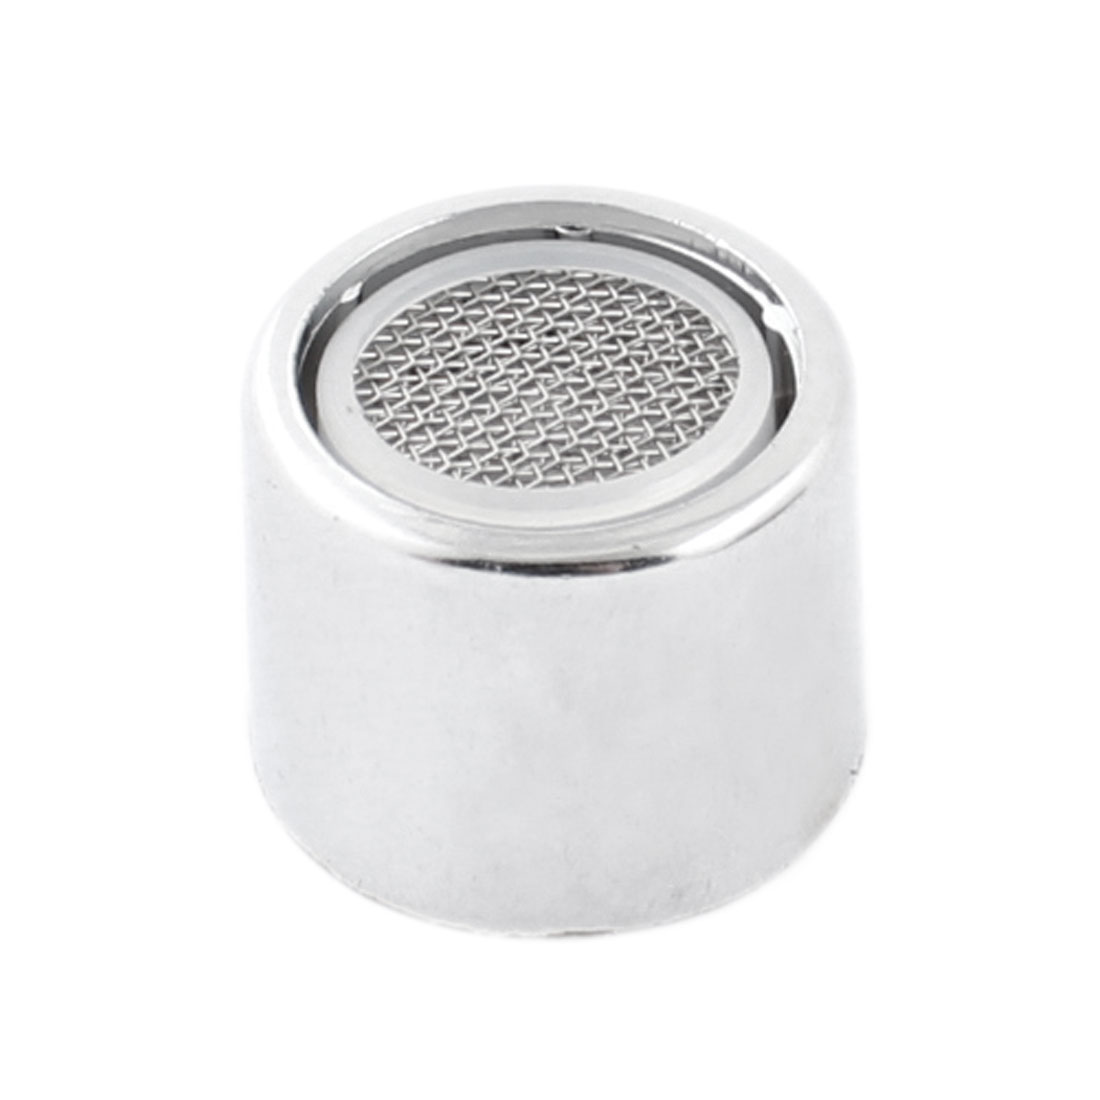 Kitchen Silver Tone 20mm Female Thread Diameter Water Tap Filter Nozzle